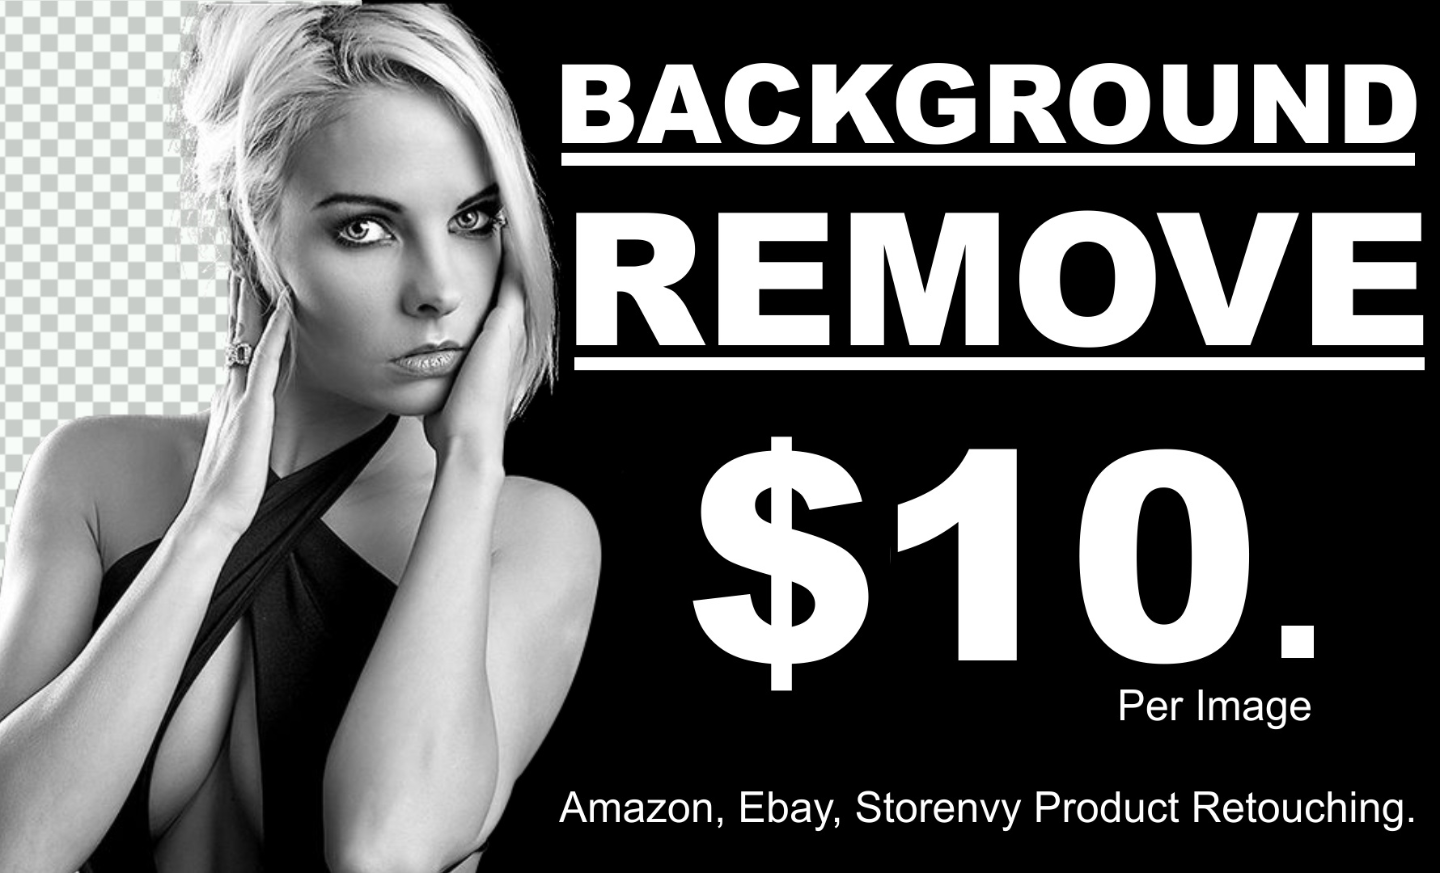 Background Removal Service for Amazon eBay Products